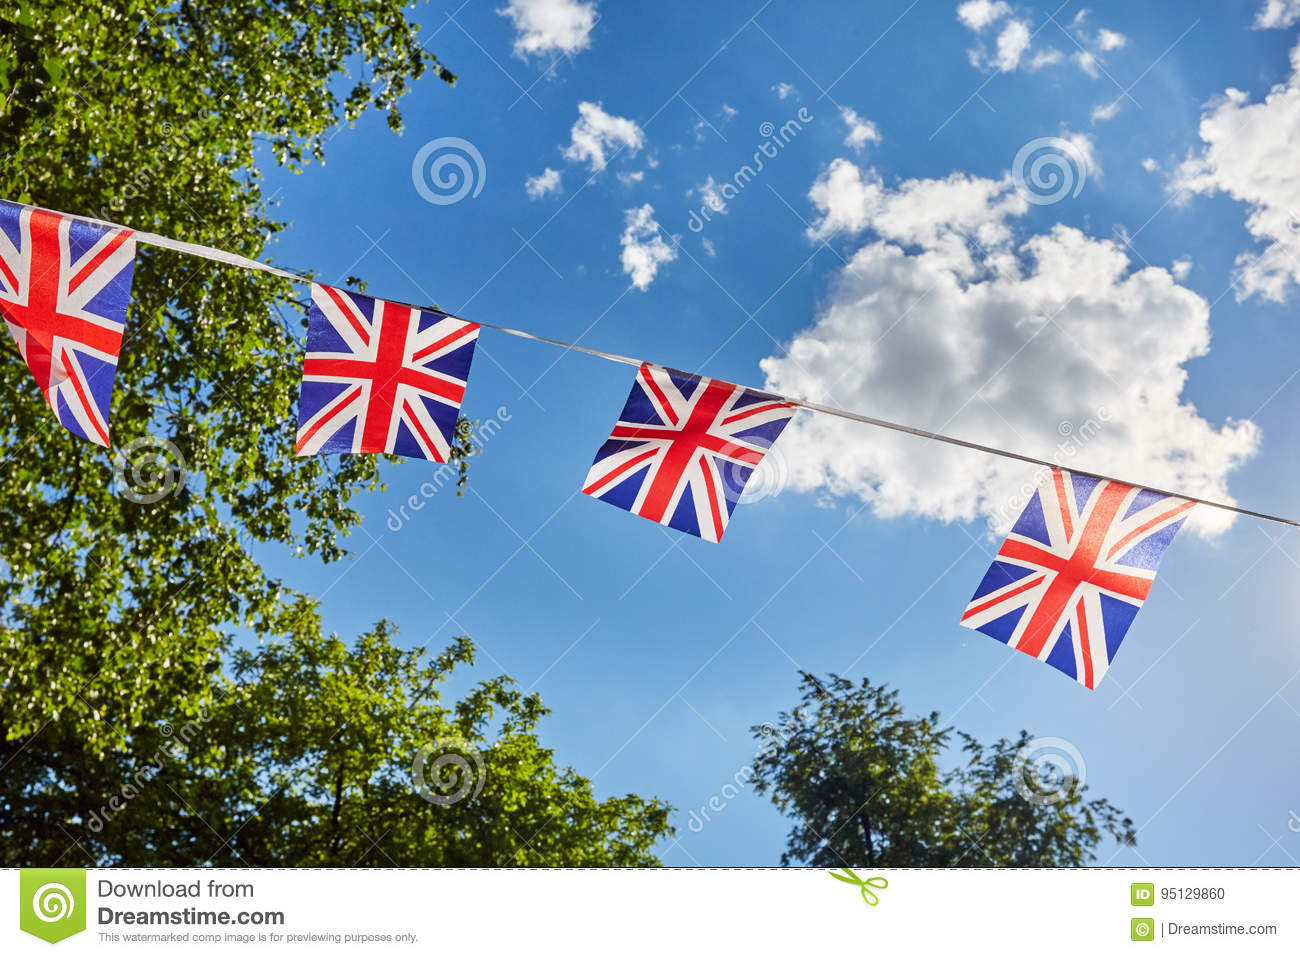 British Union Jack bunting flags against sky and green trees